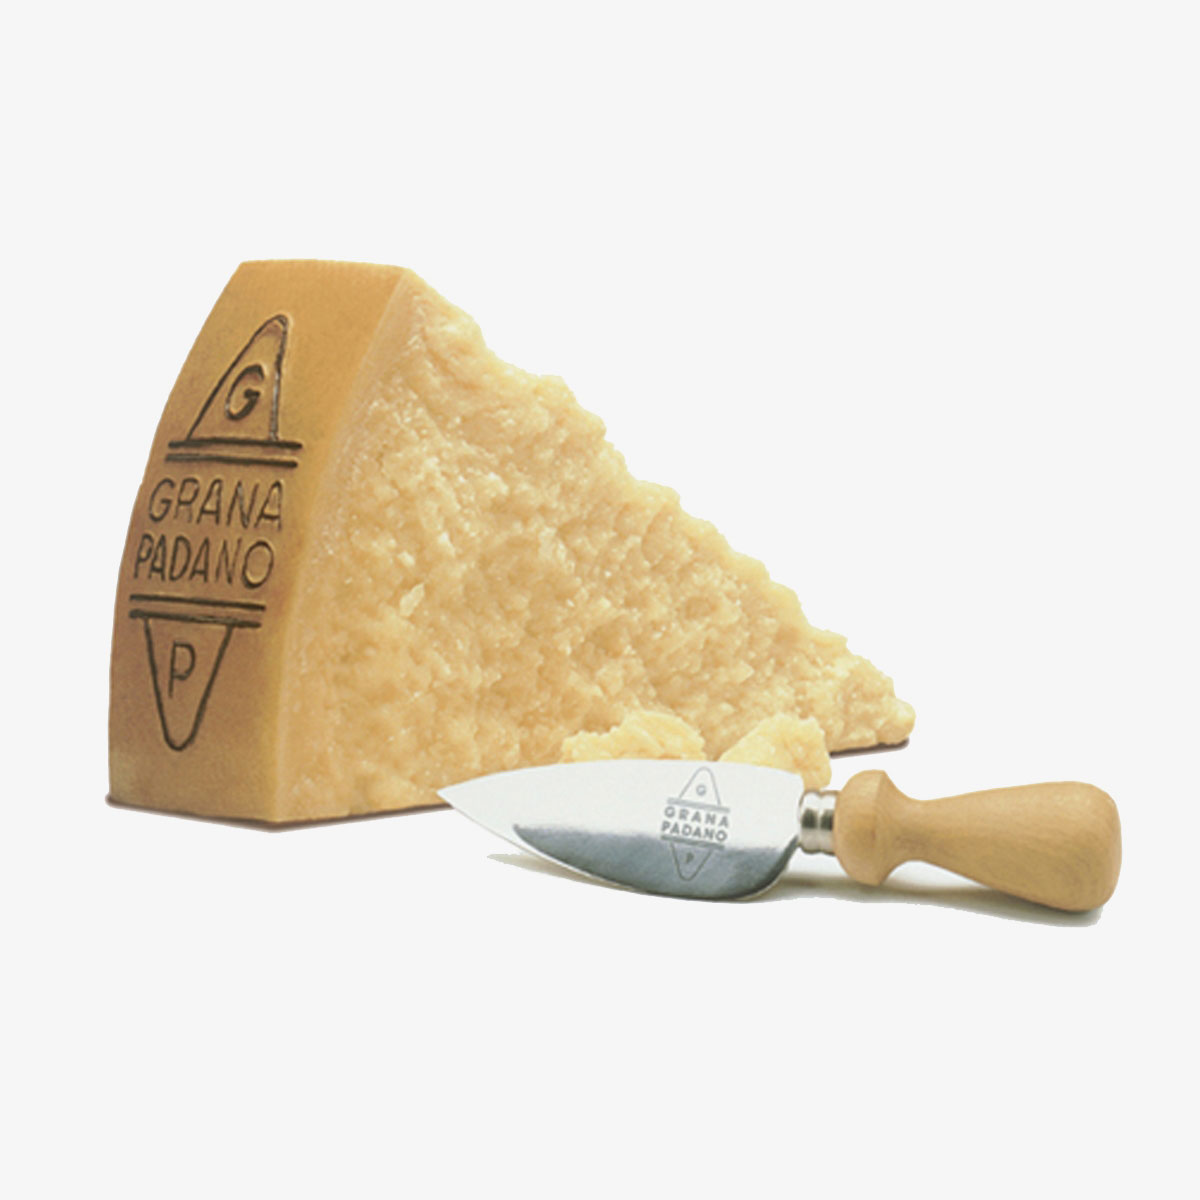 "Cheese: GRANA PADANO DOP RISERVA CHEESE 200gr (7.05oz) ""Product of Italy"""